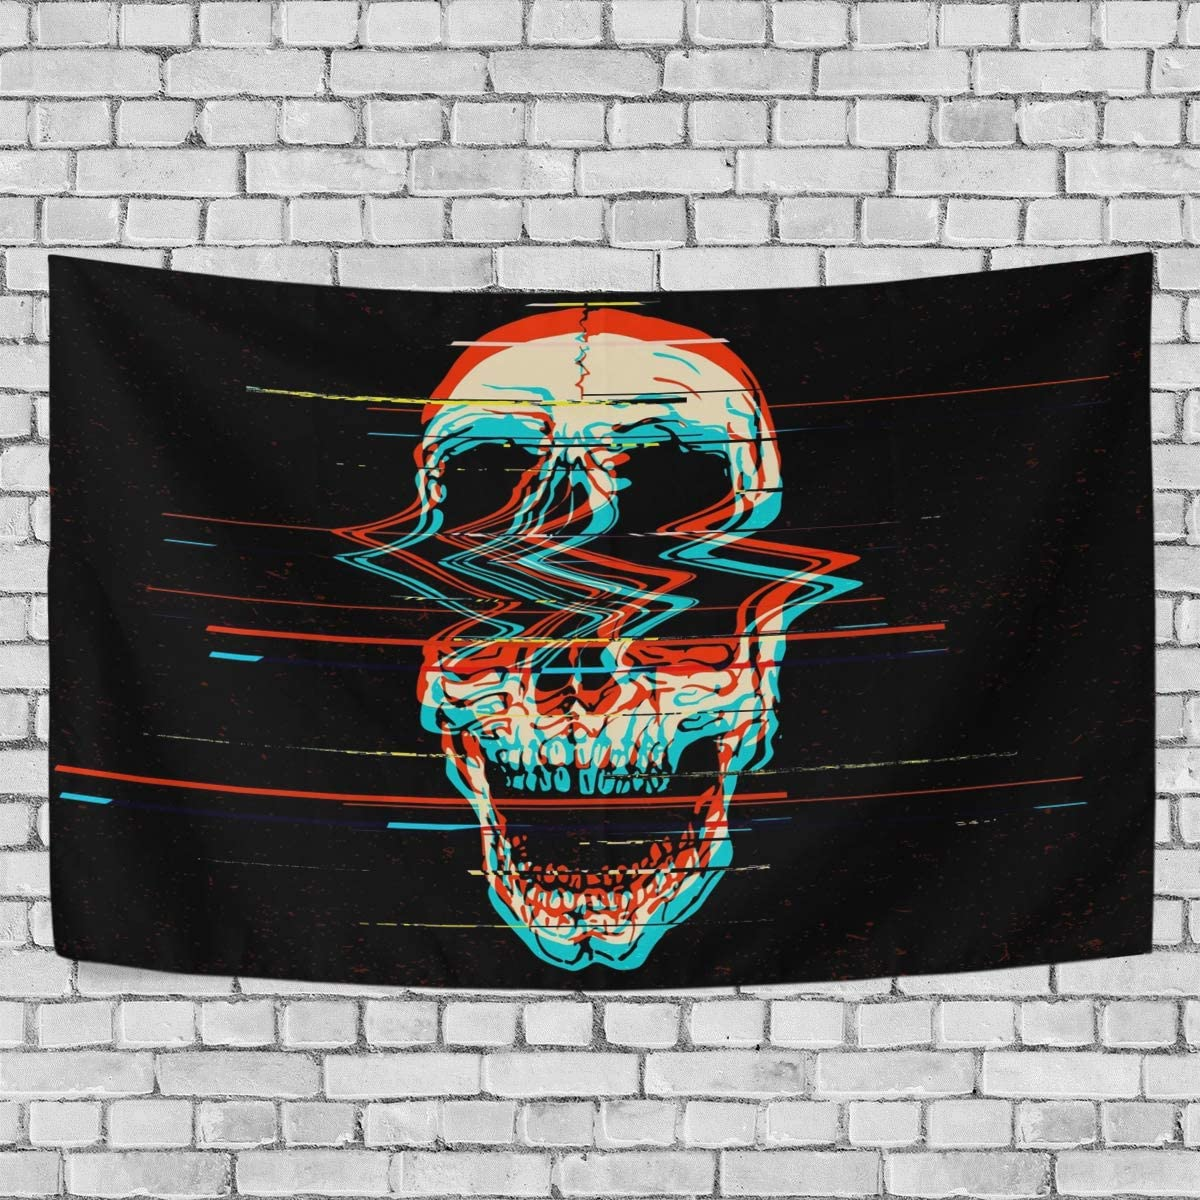 Baofu Skull Tapestry Wall Hanging Tapestries Happy Halloween Colorful Scare Hippie Psychedelic Vintage Polyester Carpet Decorative for Living Room Bedroom Bedroom 90x60inch